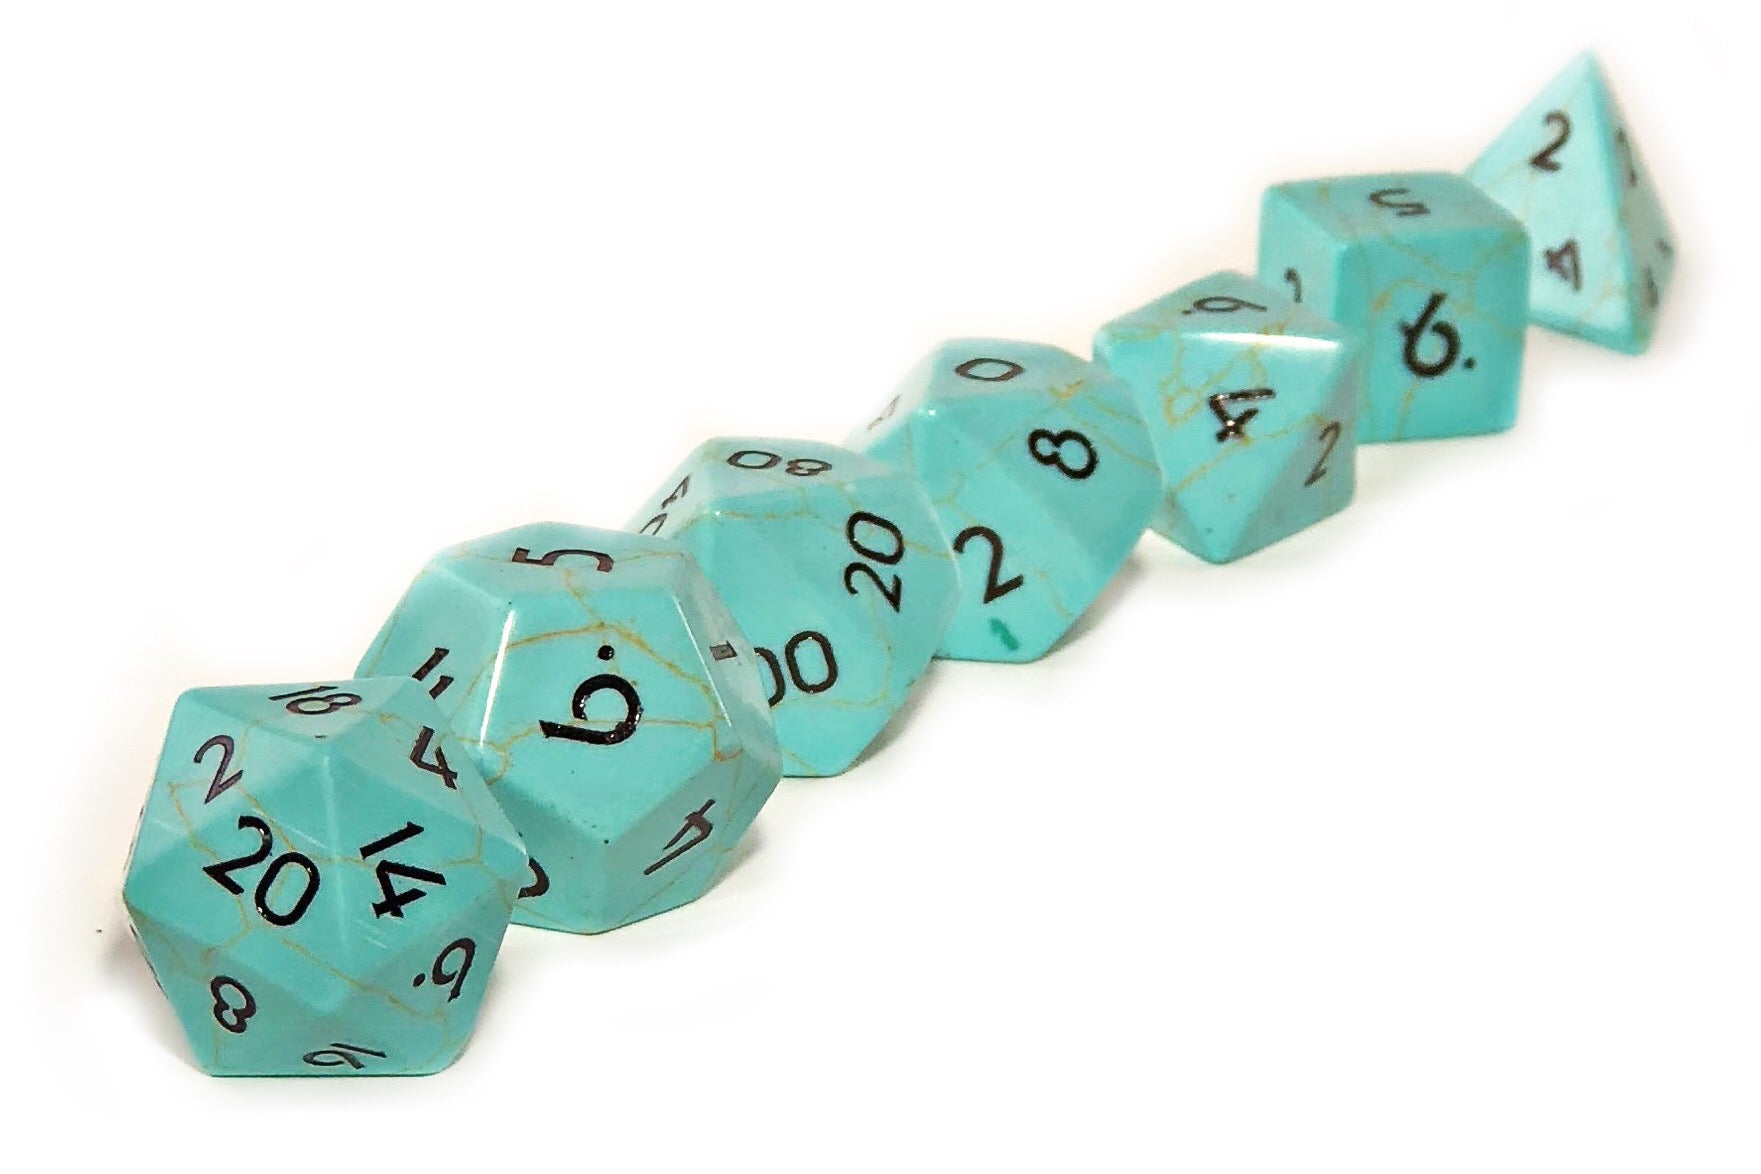 Green Turquoise Semi Precious Stone Dice Set of 7